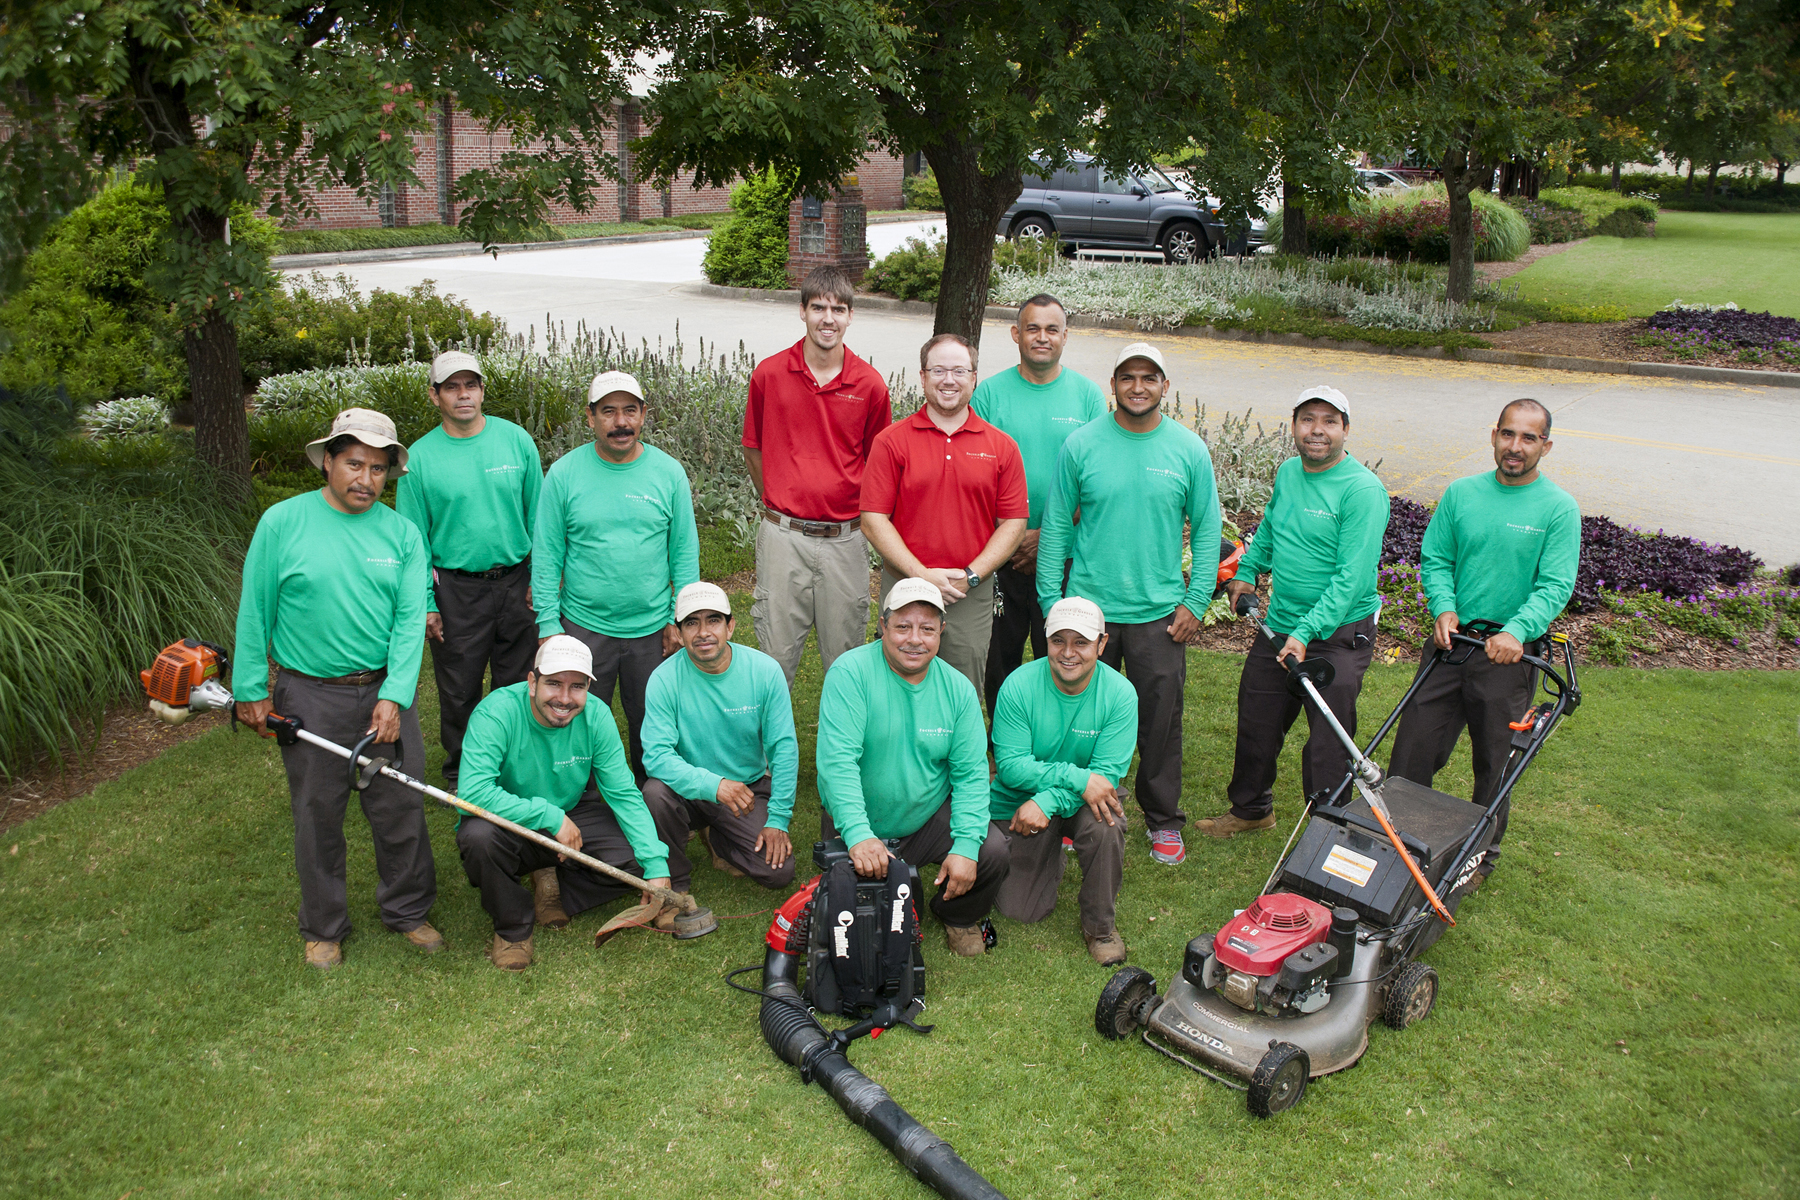 landscape-contractors-maintenance-team-for-commercial-landscaping